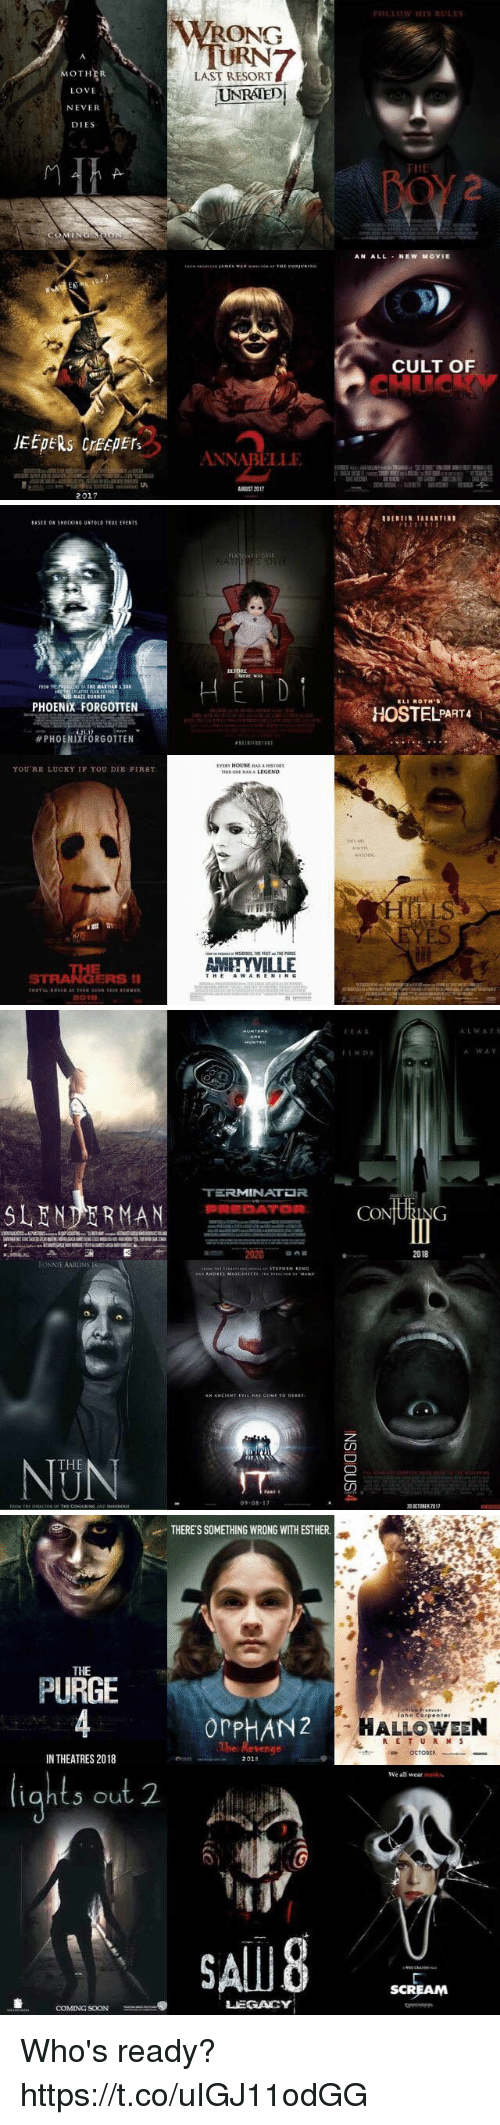 Slender Man: MOTHER  LOVE  NEVER  DIES  JEEPERS creepers  2017  WRONG  LAST RESORT  UNRATED  ANNABELLE  FOLLOW HIS RULES  AN ALL NEW MOVIE  CULT OF   PHOENIX FORGOTTEN  PHOENIXFORGOTTEN  YOU RE LUCKY IF YOU DIE FIRST.  STRANGERS II  2001E  BEFORE  EVER HOUSE HASAHISTORY  AMITYVILLE  ROTH's  HOSTEL PART4   TERMINATDR  SLENDER MAN PREDATOR  2020  BONNIE AARONS  THE  09 08  It AR  CO  ING  20 CIOBER 2017  A:L w A v 5  A WAV   THERESSOMETHING WRONG WITH ESTHER.  THE  PURGE  or PHANZ  IN THEATRES 2018  2018  S out 2.  LEGACY  COMING SOON  John Corp enter  HALLOWEEN  R E T U R N S  OCTODER  We all wear  SCREAM Who's ready? https://t.co/uIGJ11odGG